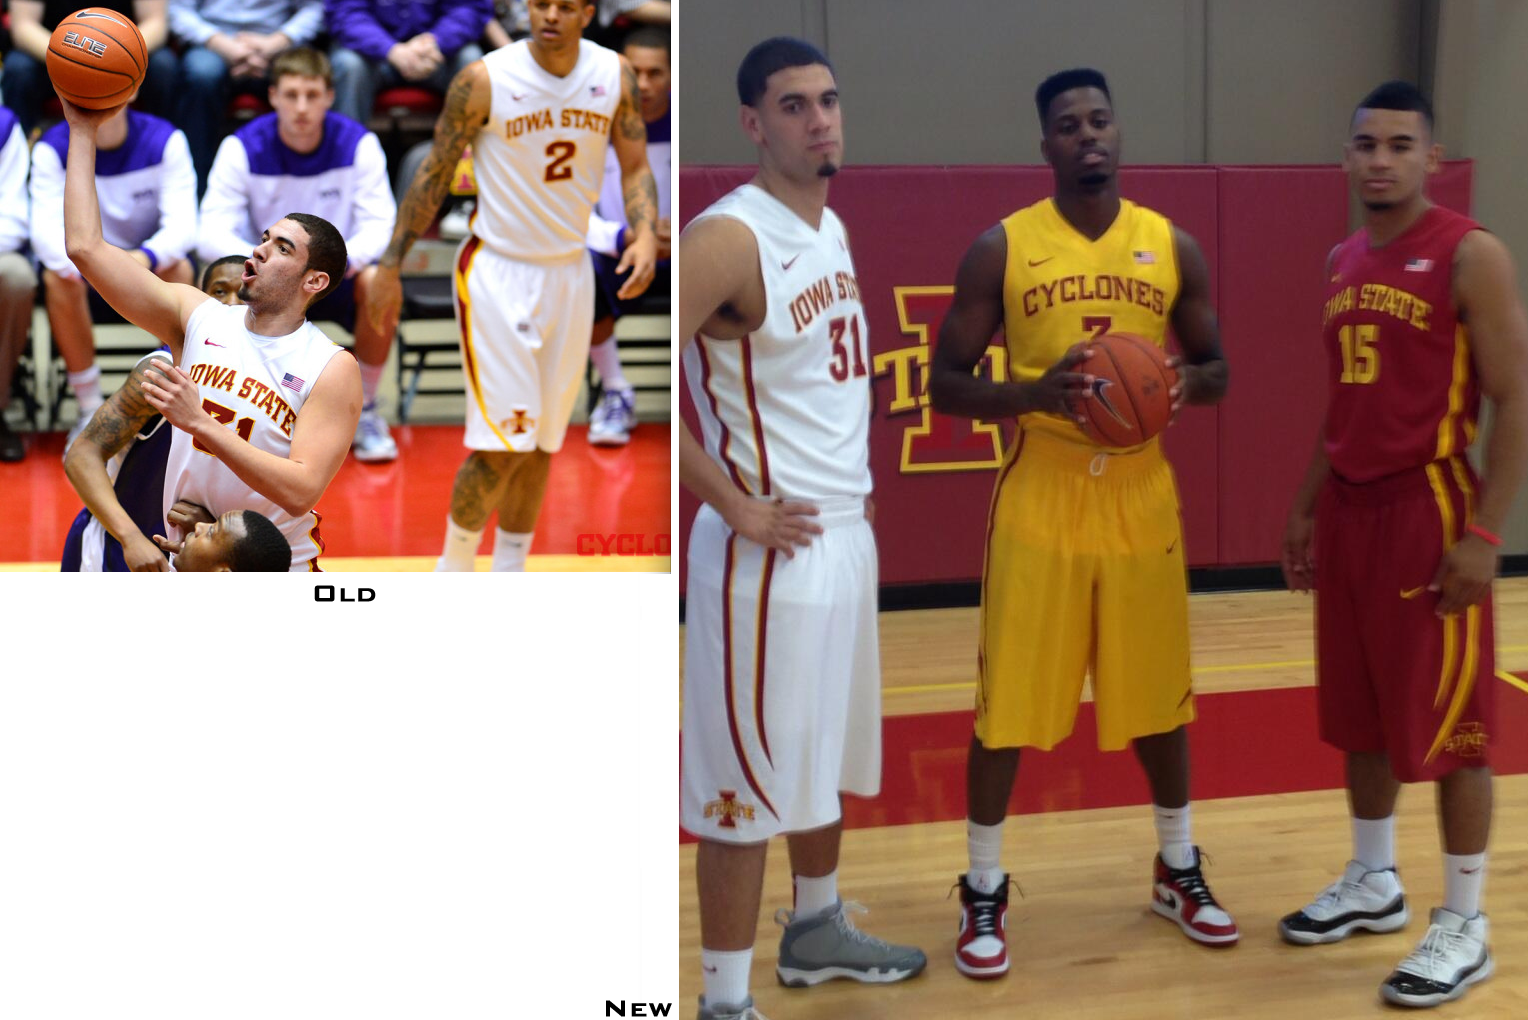 bdb2613bfe6 Minor changes for Iowa State, which has a new design down the sides of the  jersey and shorts.